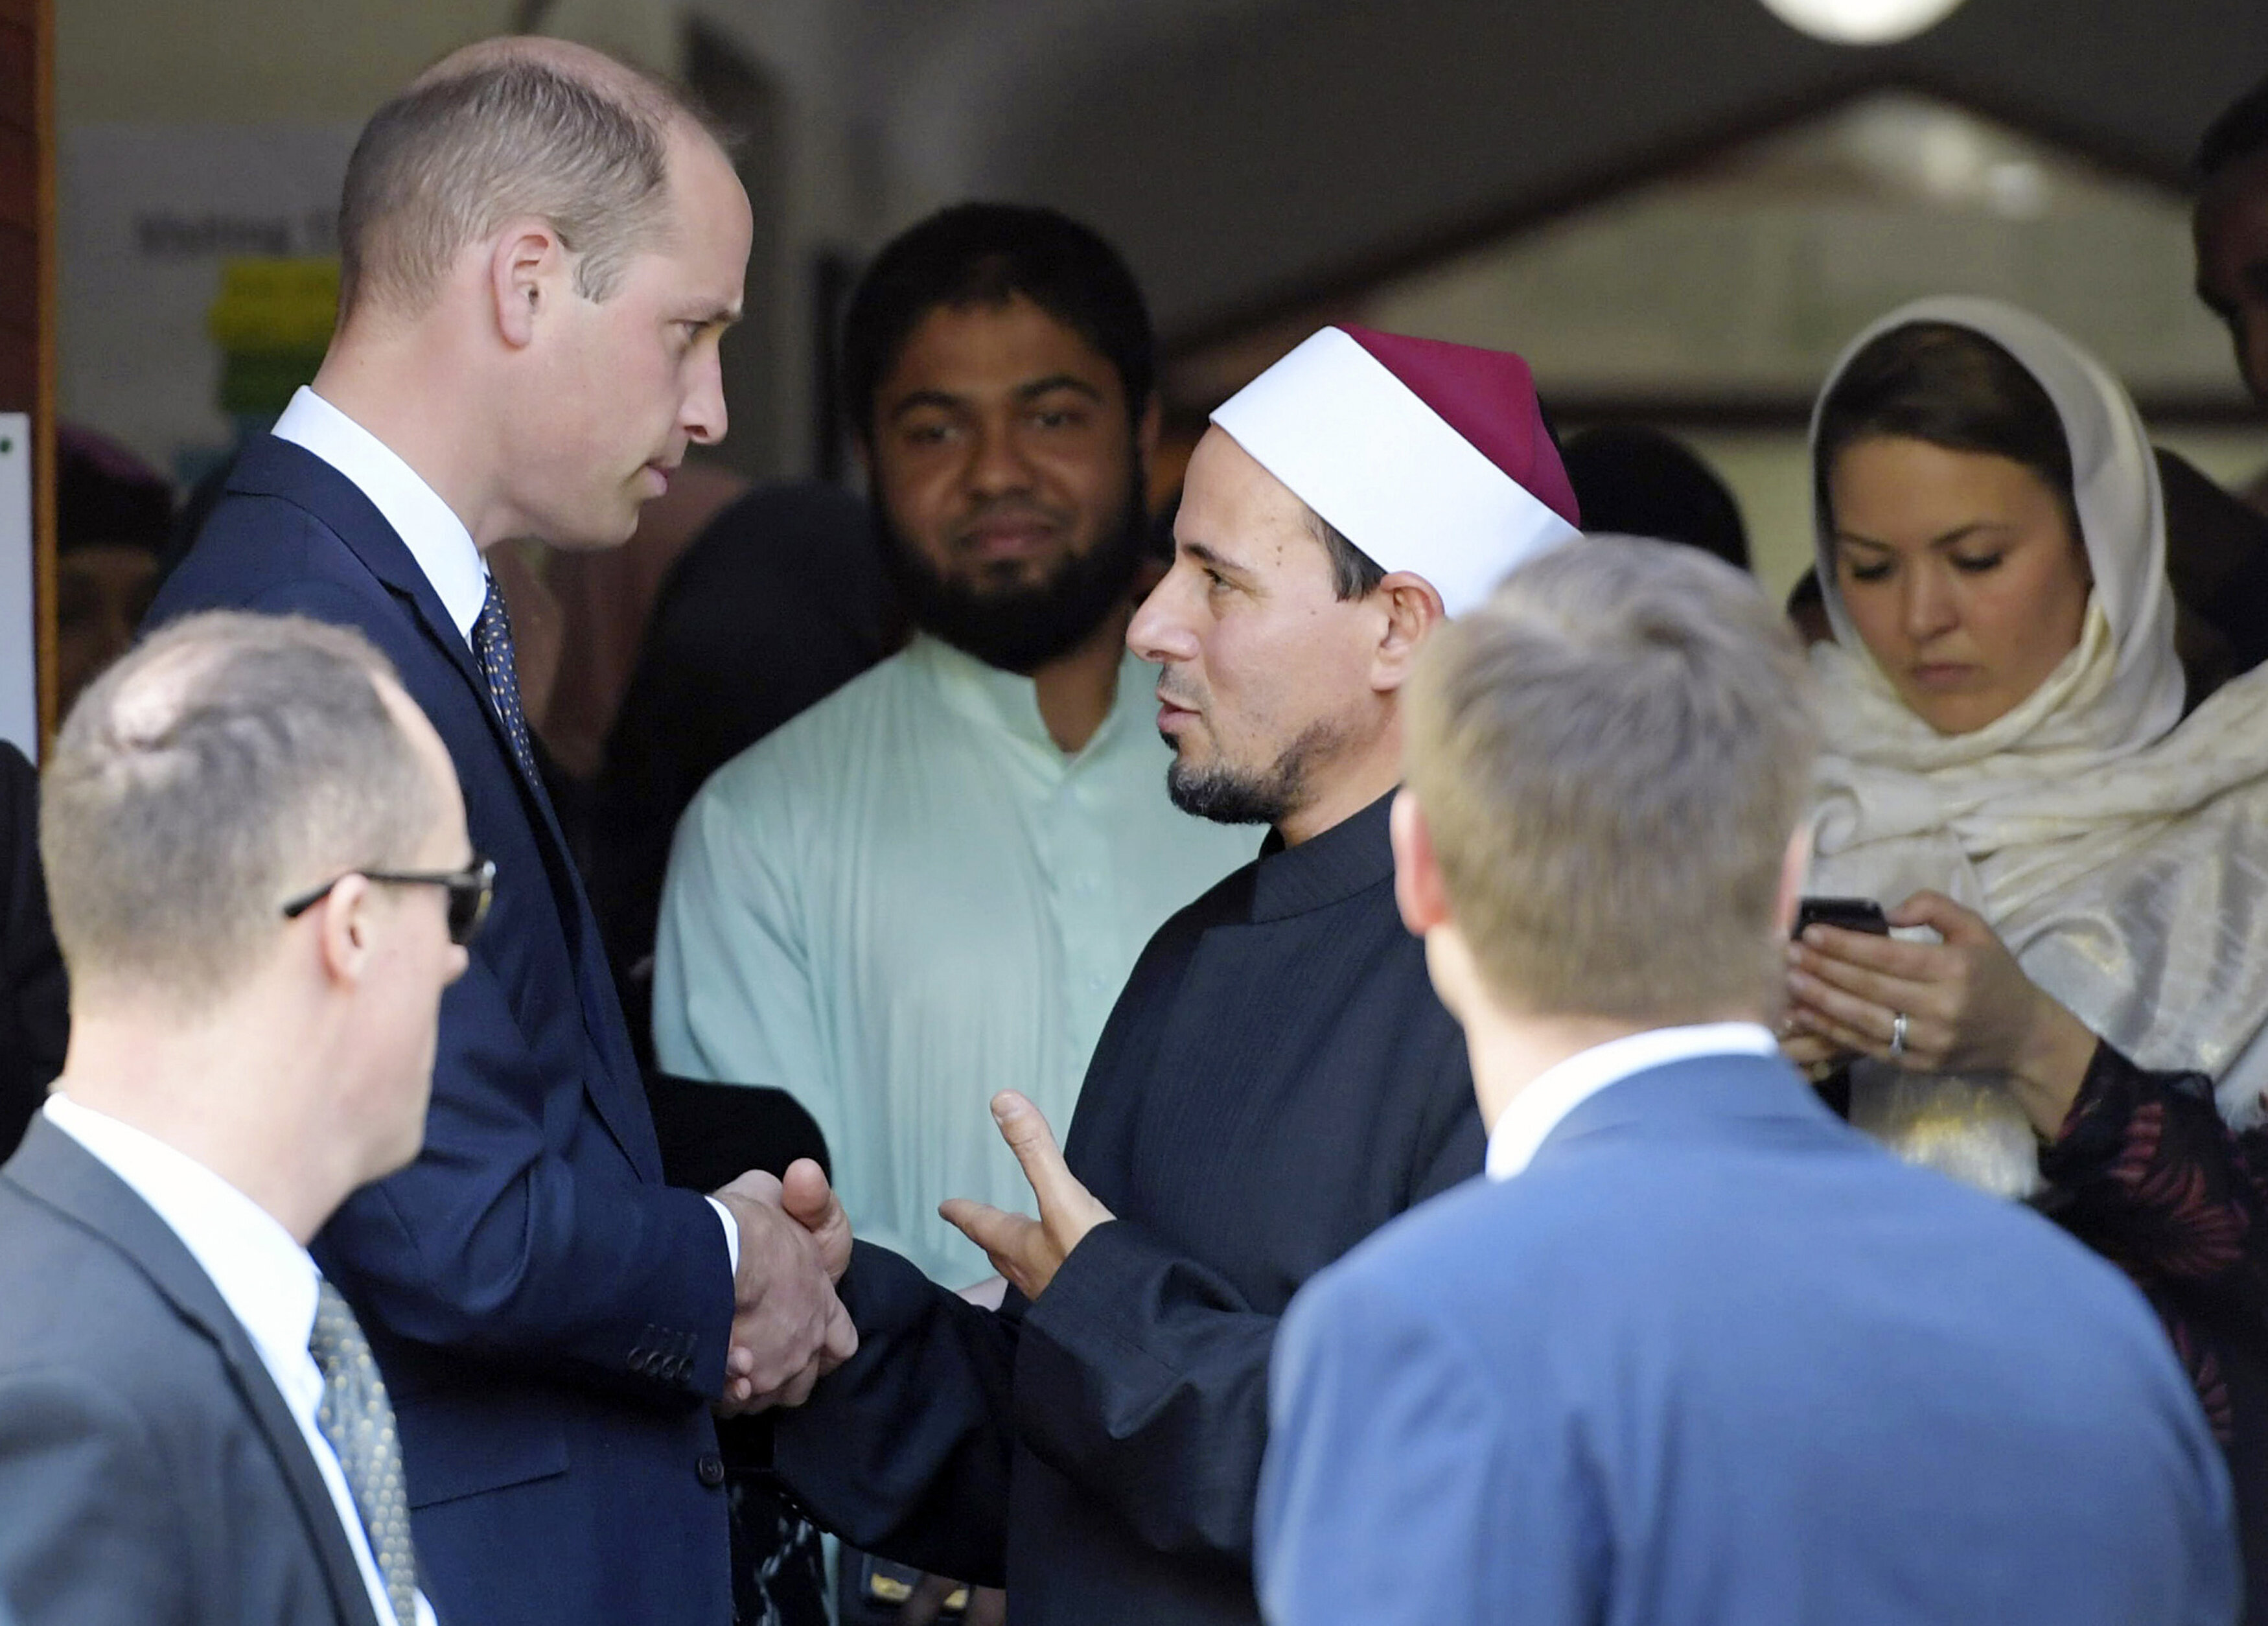 Prince William (top left) shakes hands with Imam Gamal Fouda after his visit to the Al Noor Mosque in Christchurch, New Zeala